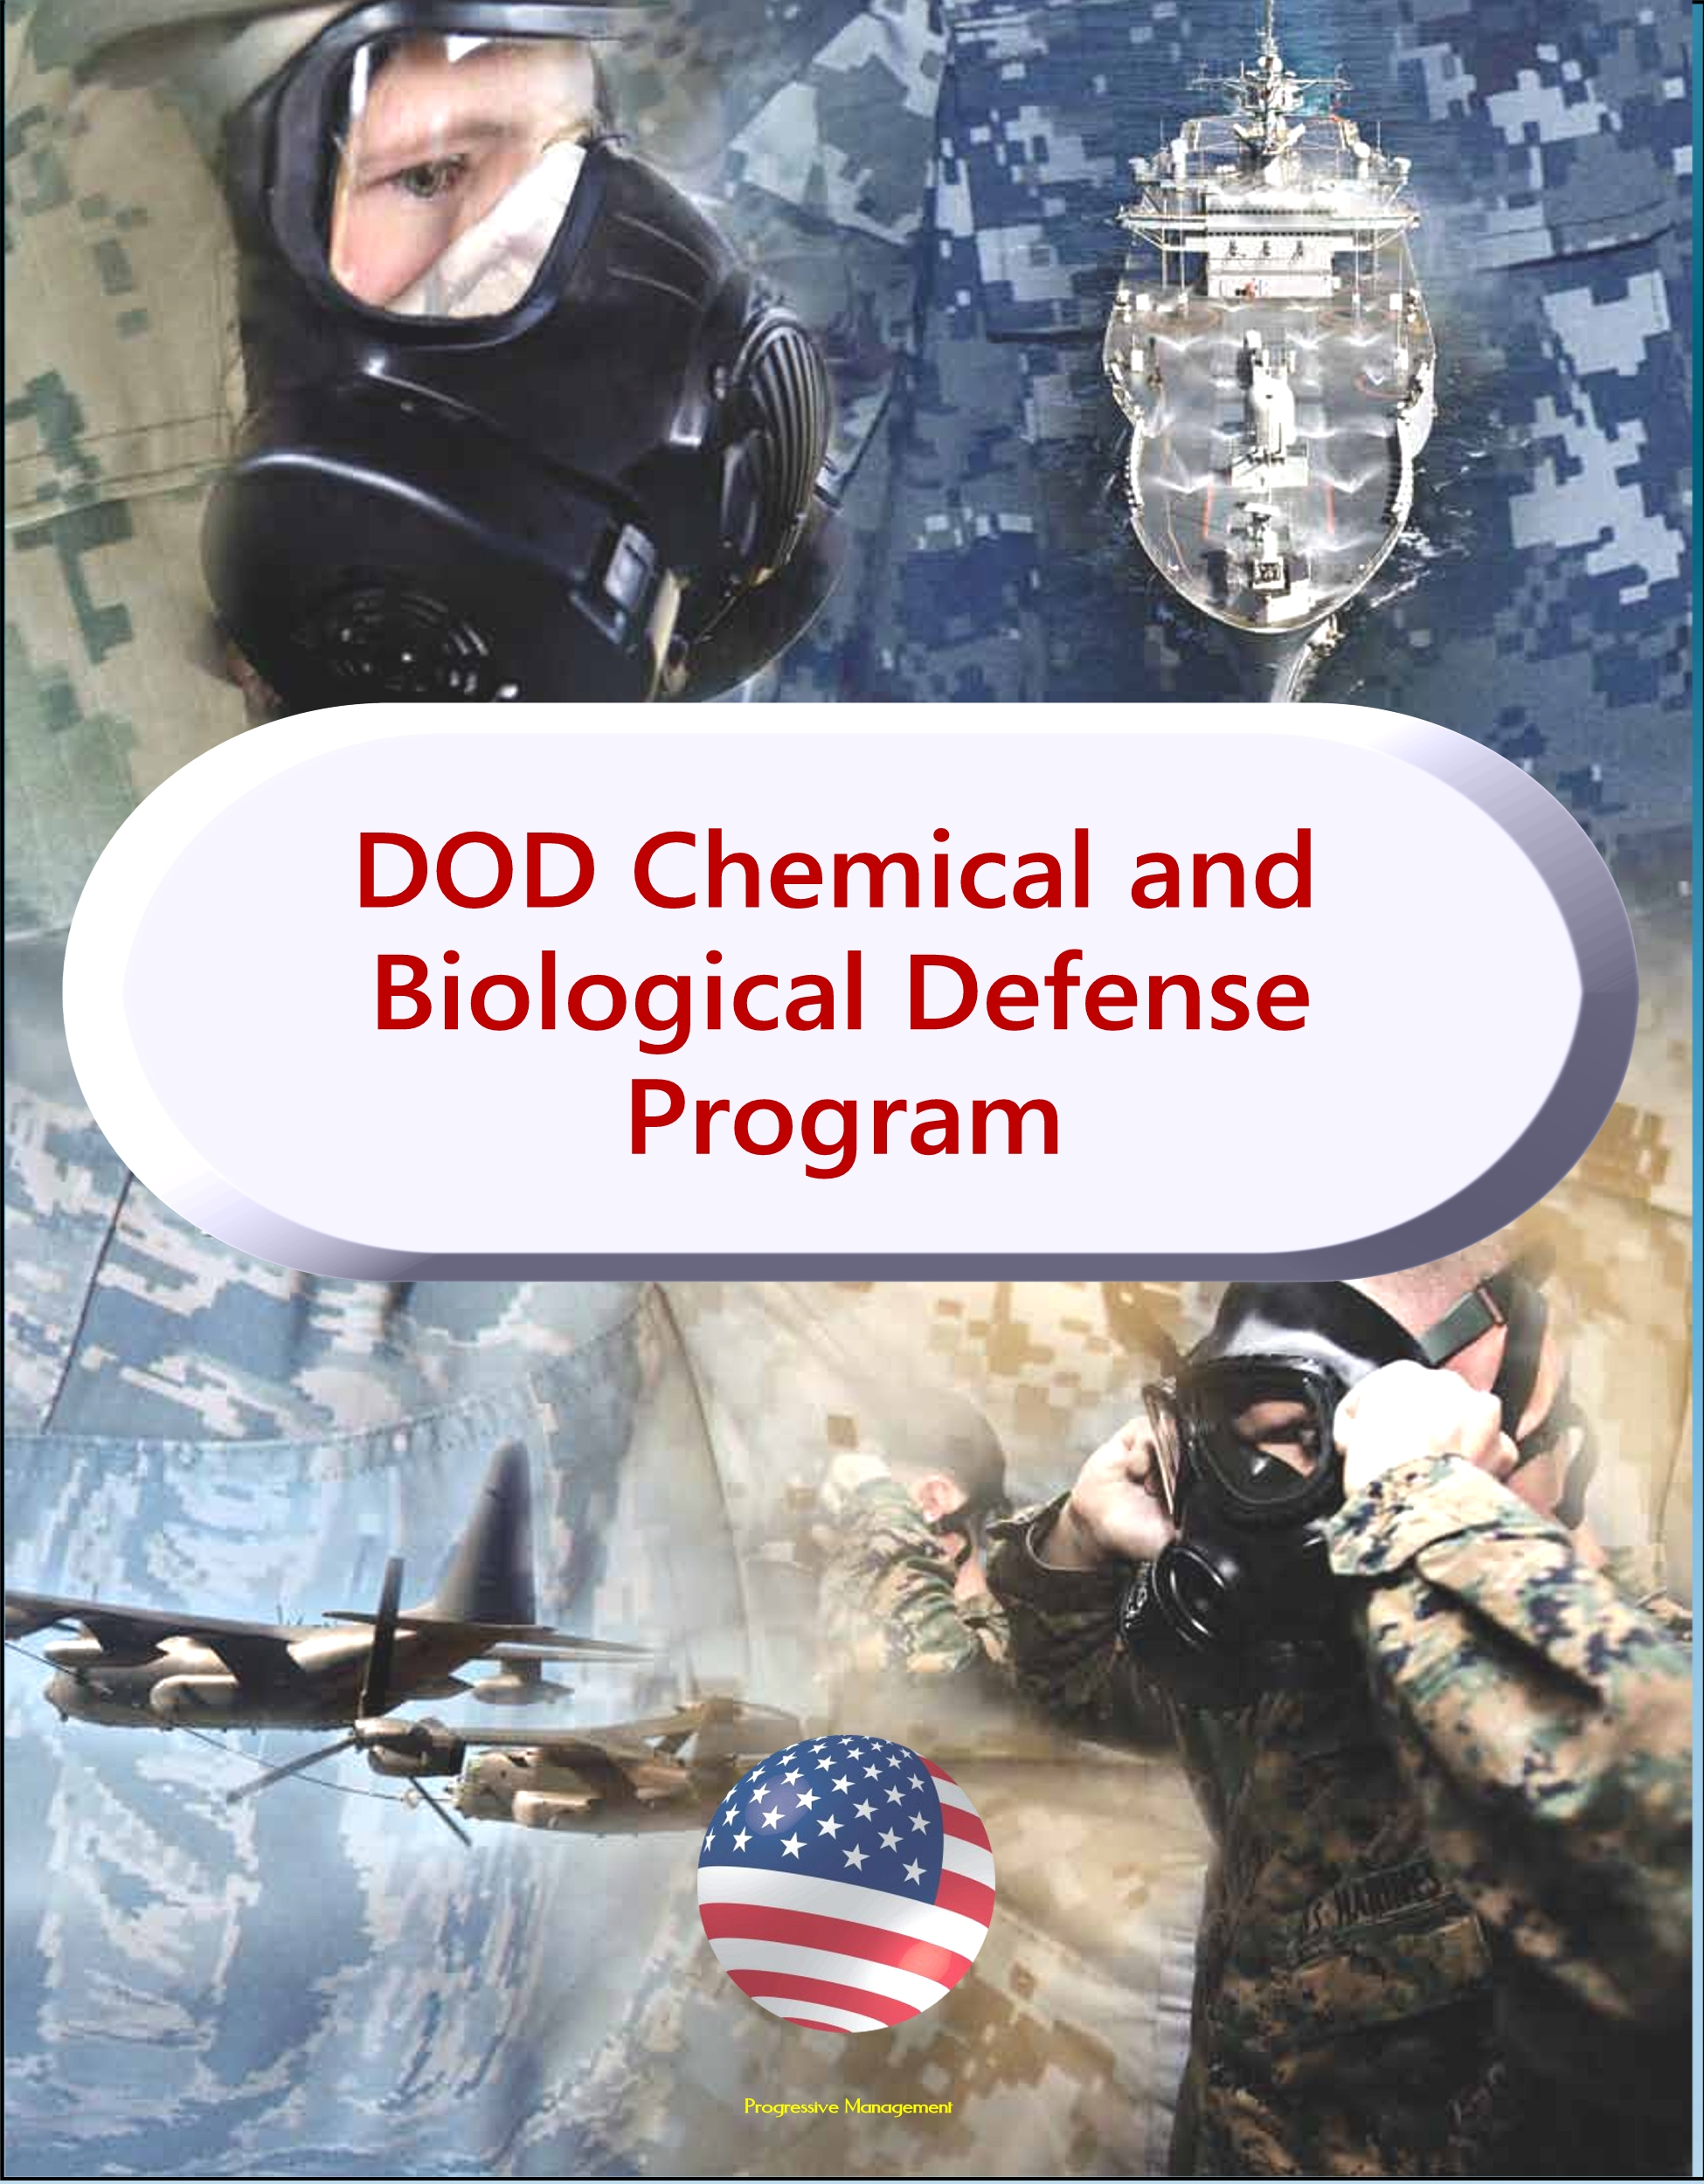 an examination of chemical warfare and terrorism Ada433826 title : marine corps counterterrorism: determining medical supply needs for the chemical biological incident response force descriptive note : final rept.